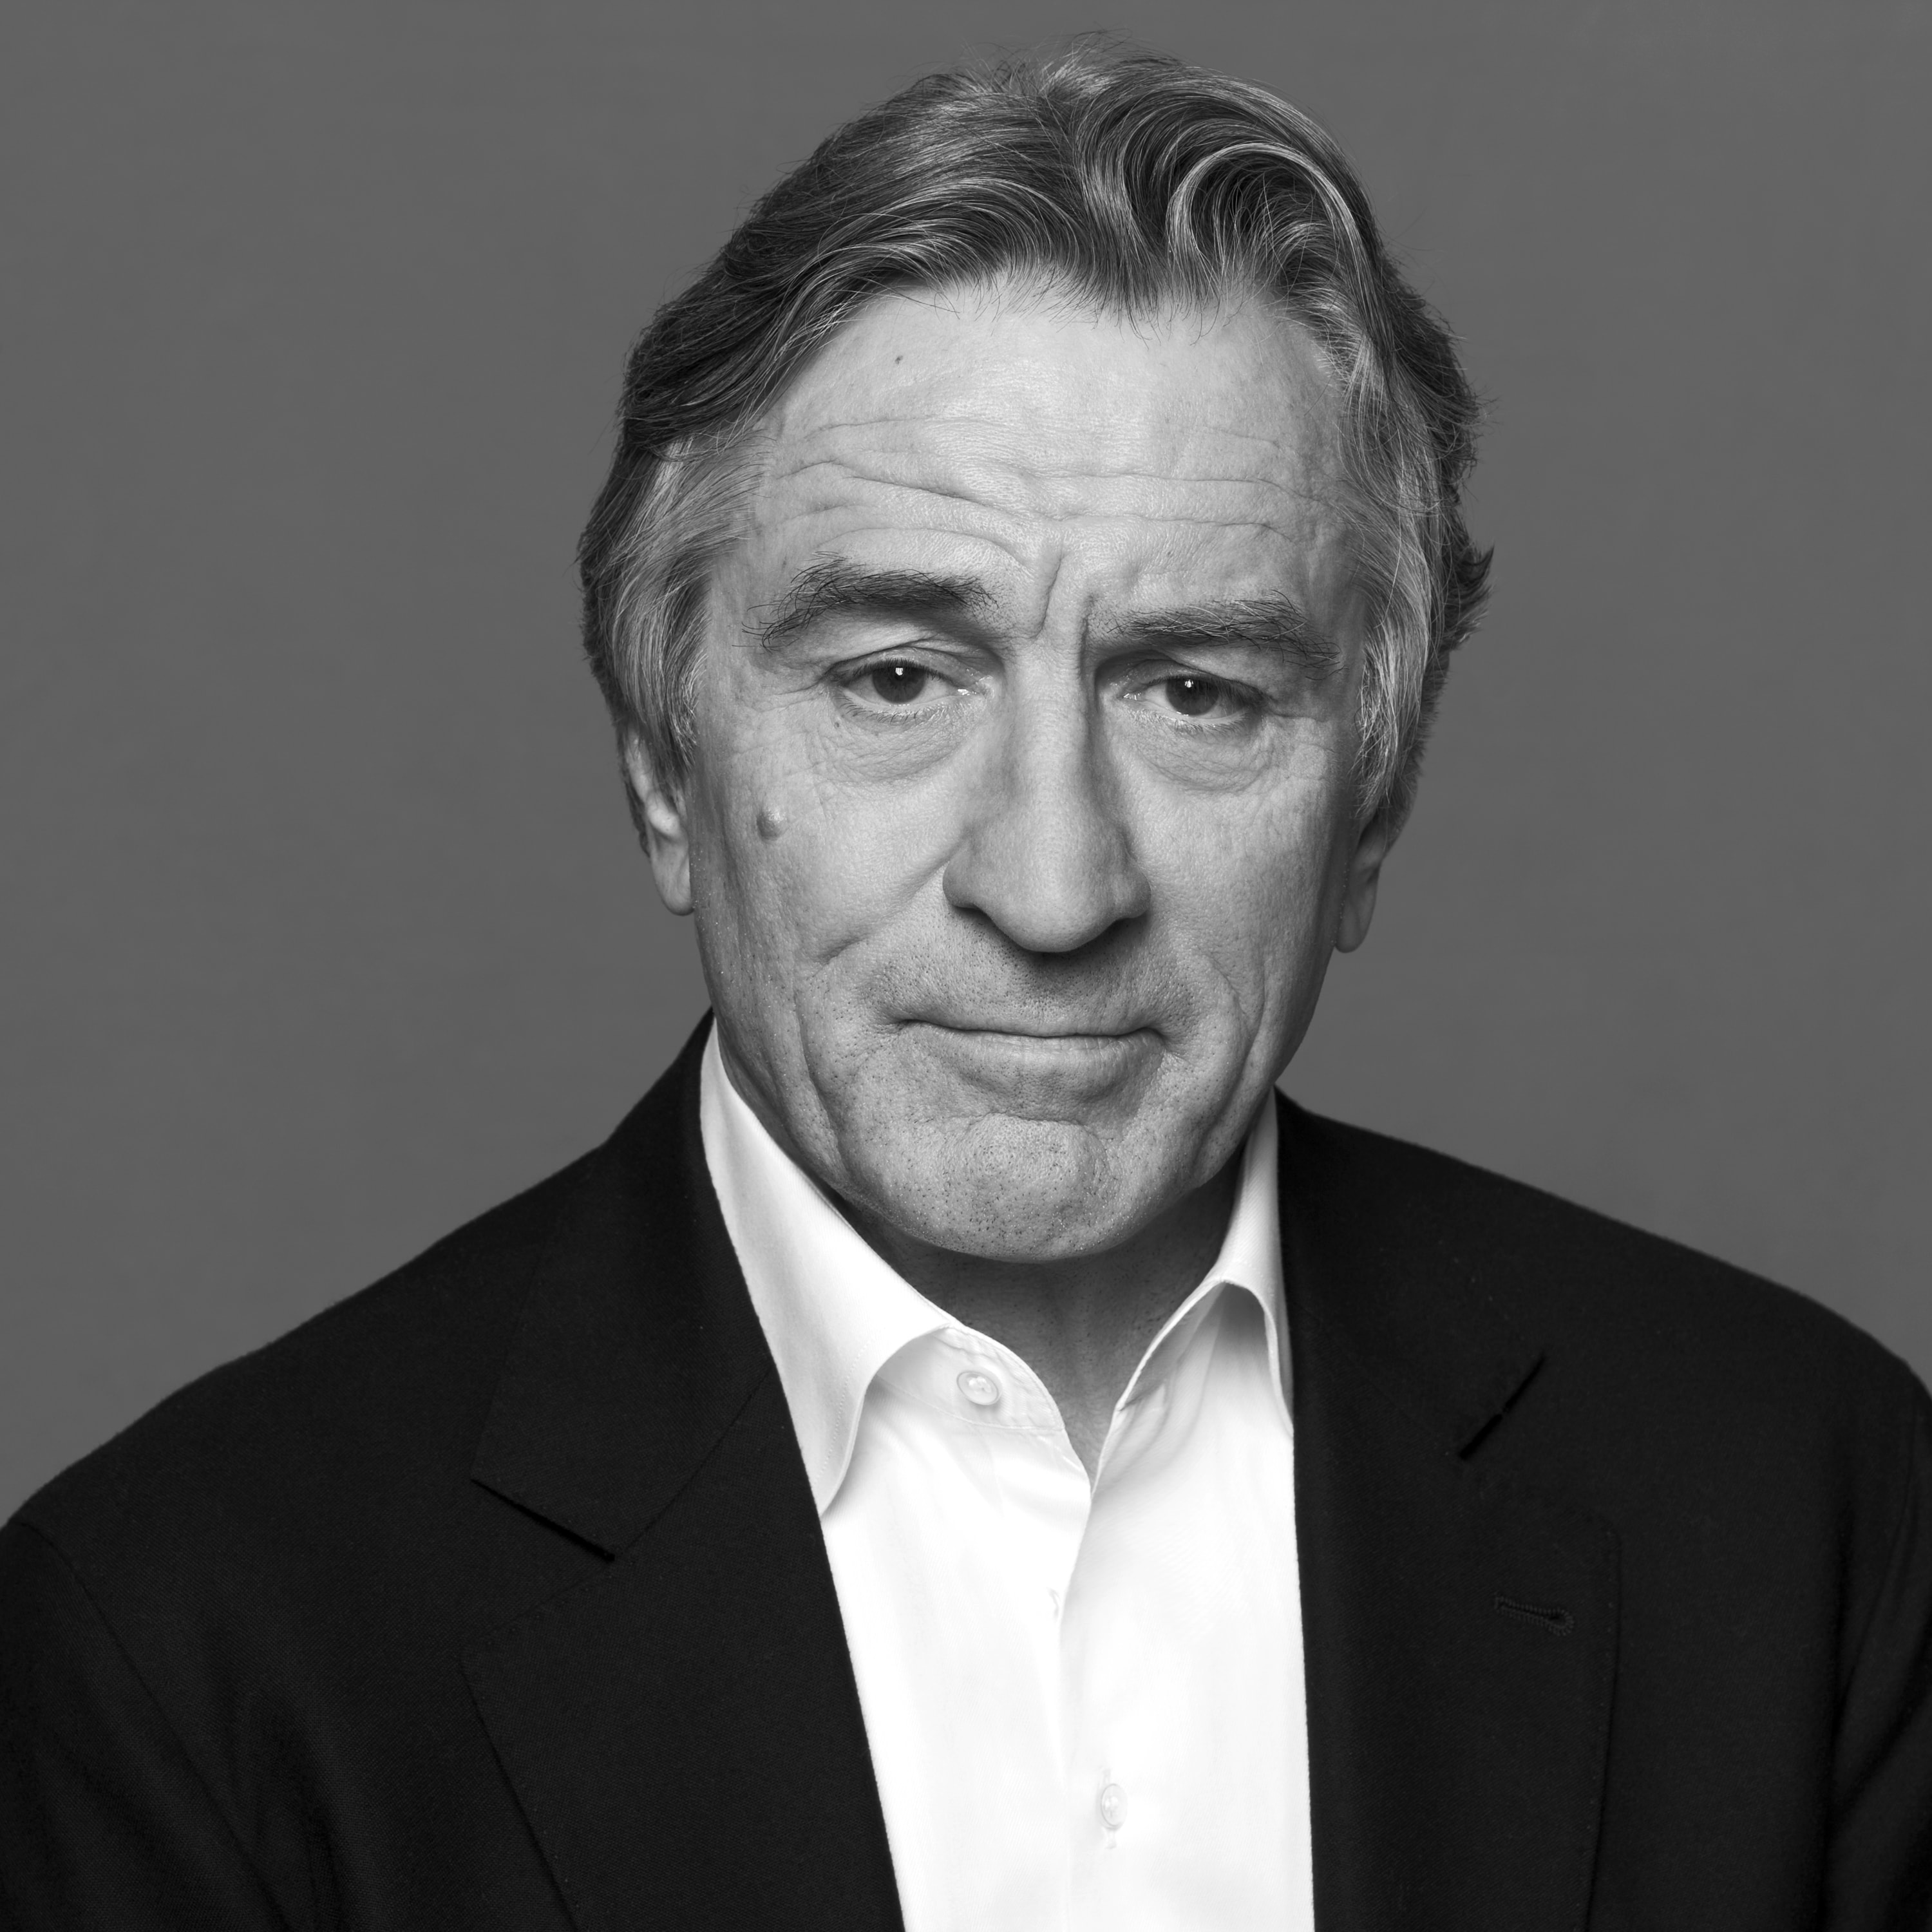 Children's Diabetes Foundation Robert De Niro to be Honored with the Brass  Ring Award at The 2018 Carousel of Hope - Children's Diabetes Foundation